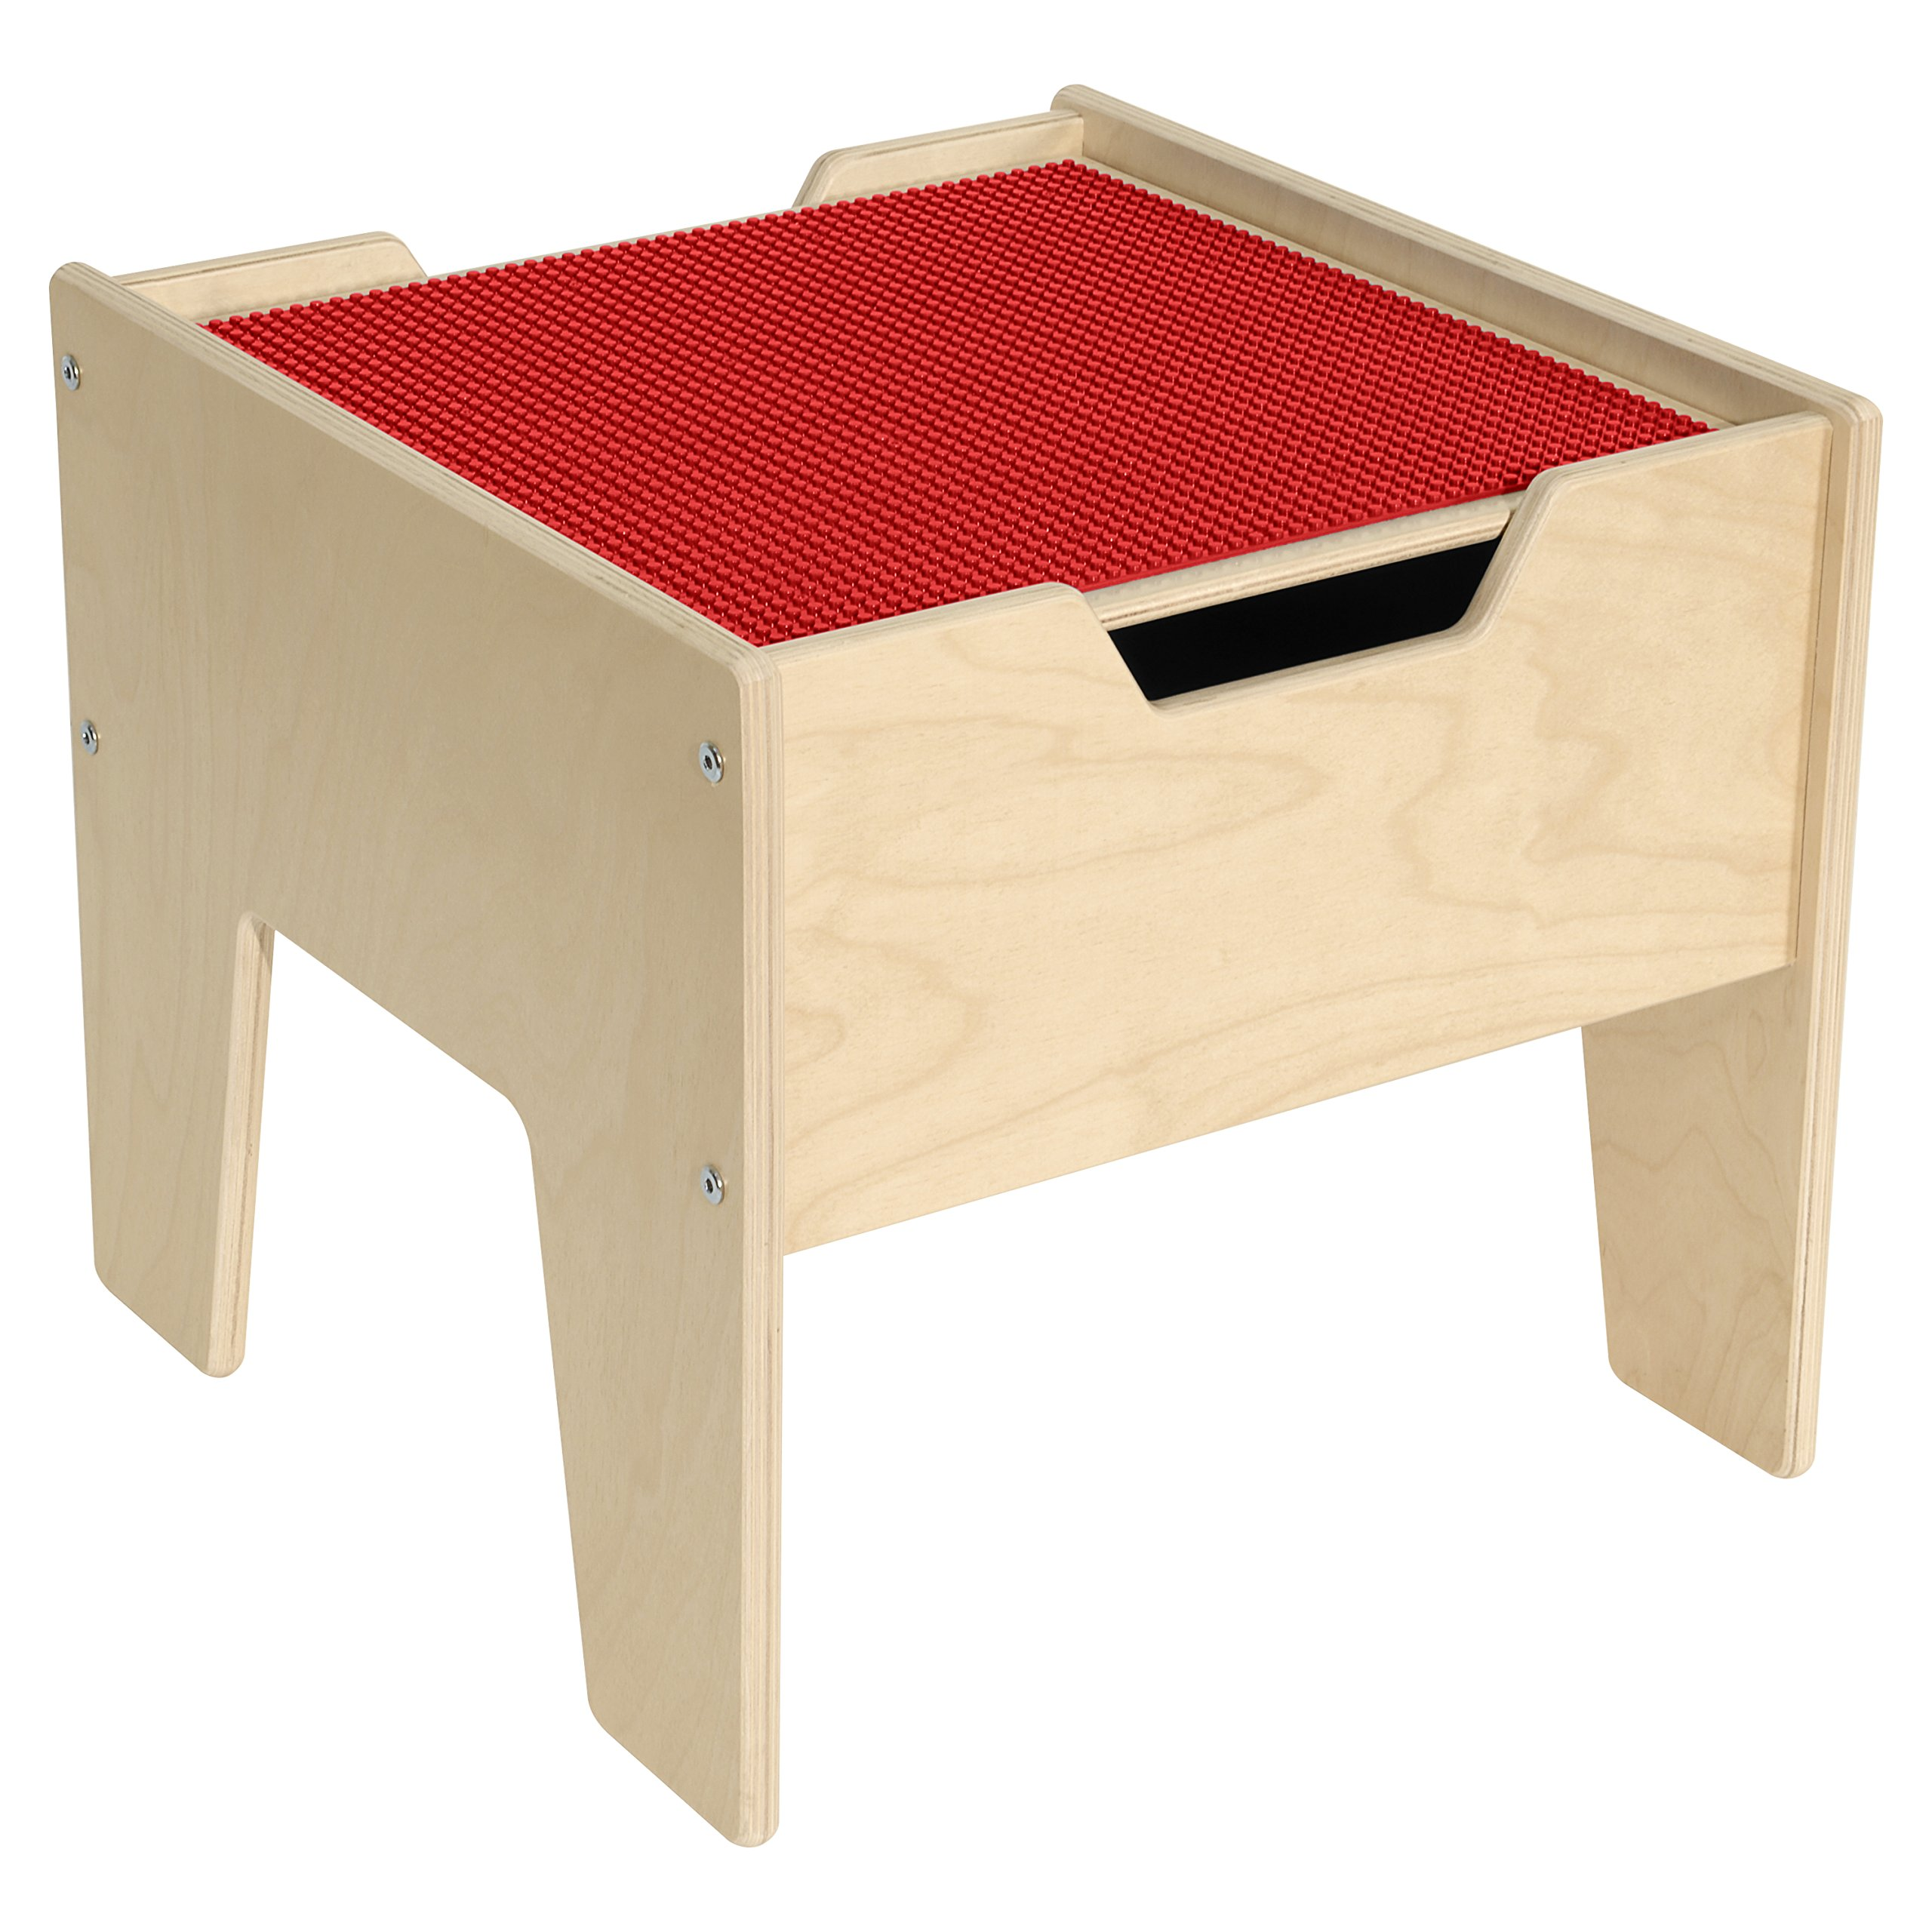 Contender C991300-R 2-N-1 Activity Table with Red Lego Compatible Top - RTA by Contender